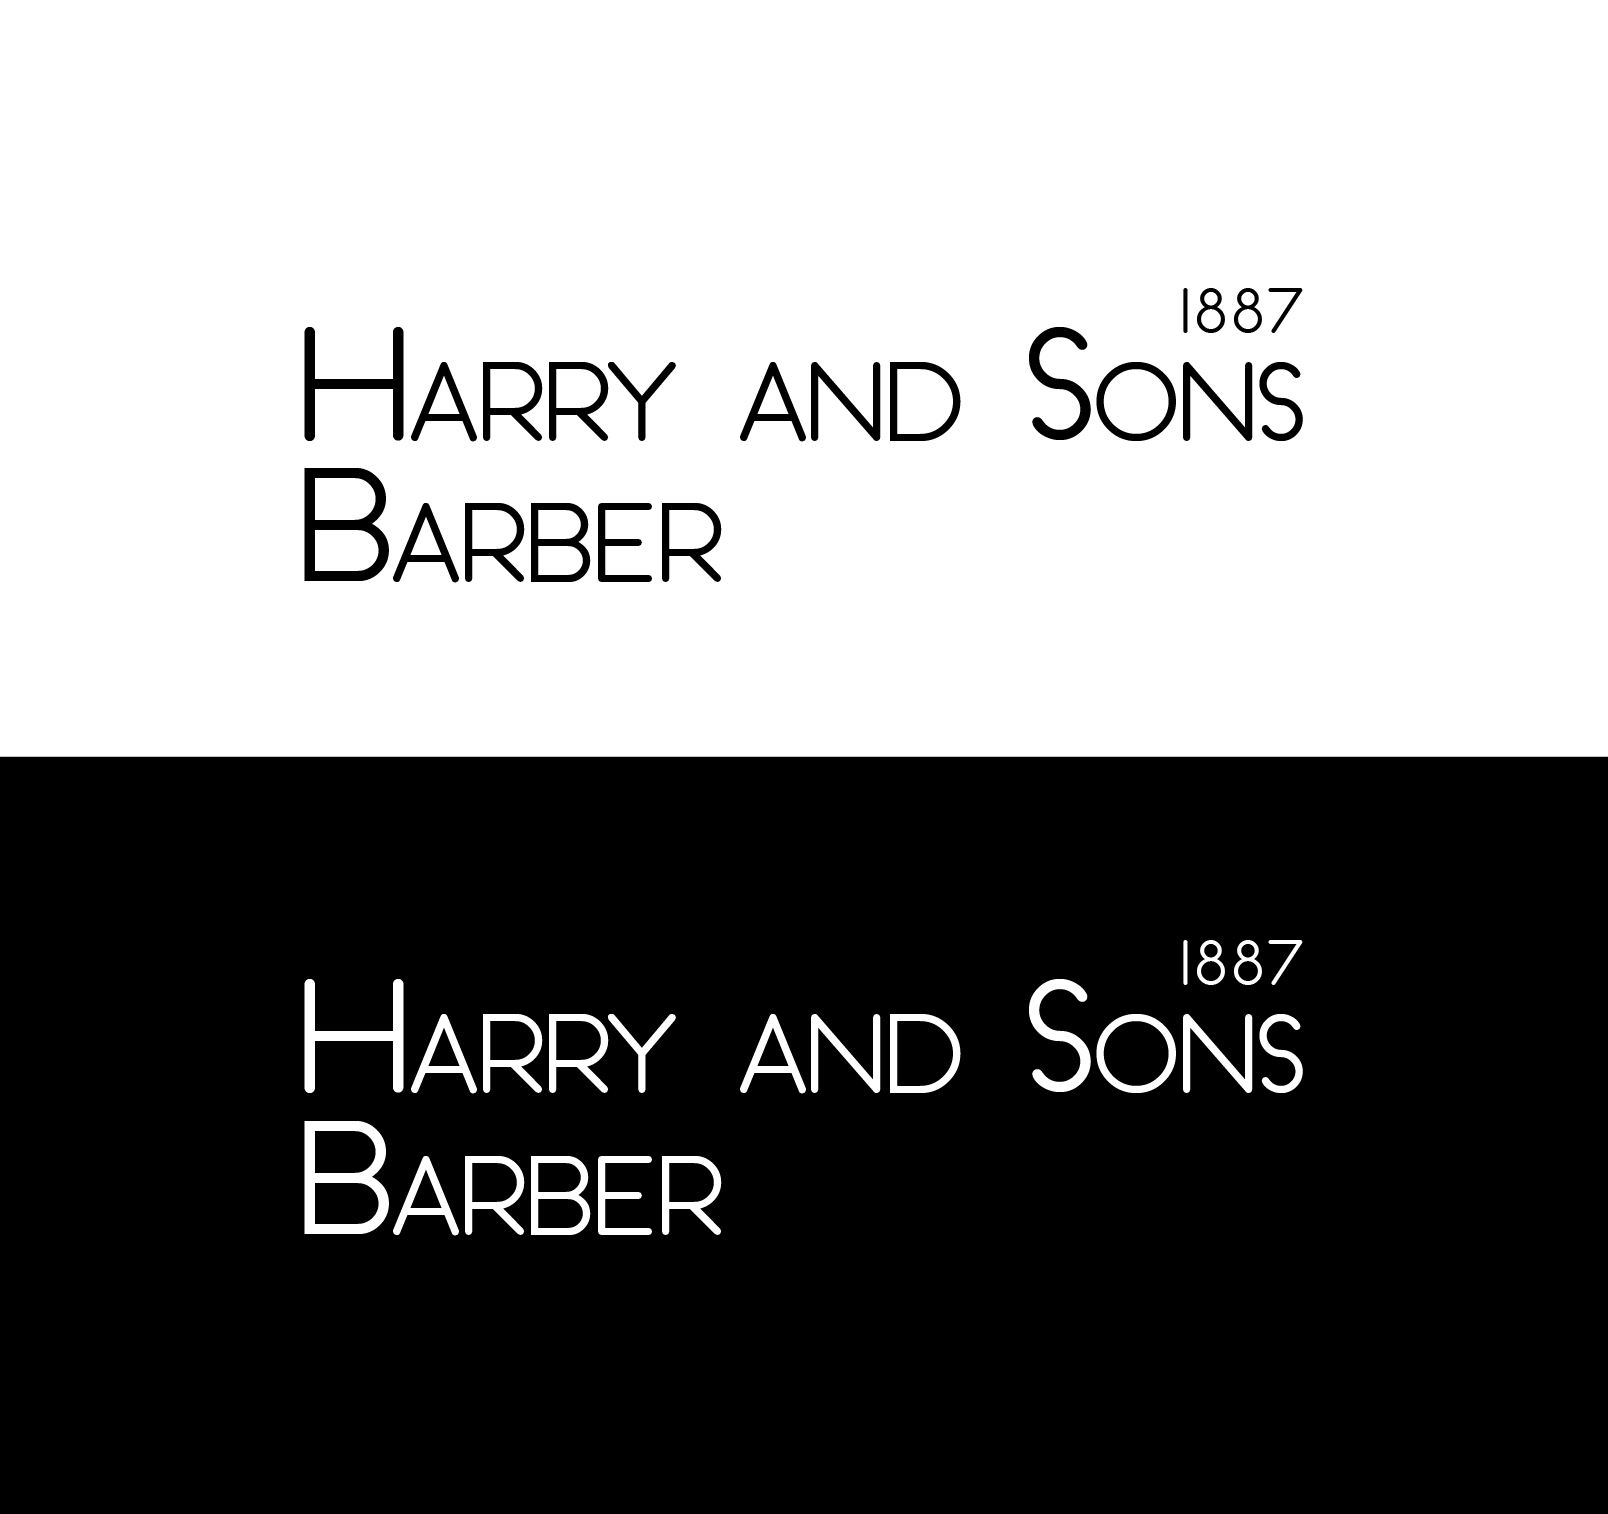 Logo Design by Ahtasham Ahmed - Entry No. 202 in the Logo Design Contest Captivating Logo Design for Harry and Sons Barber.